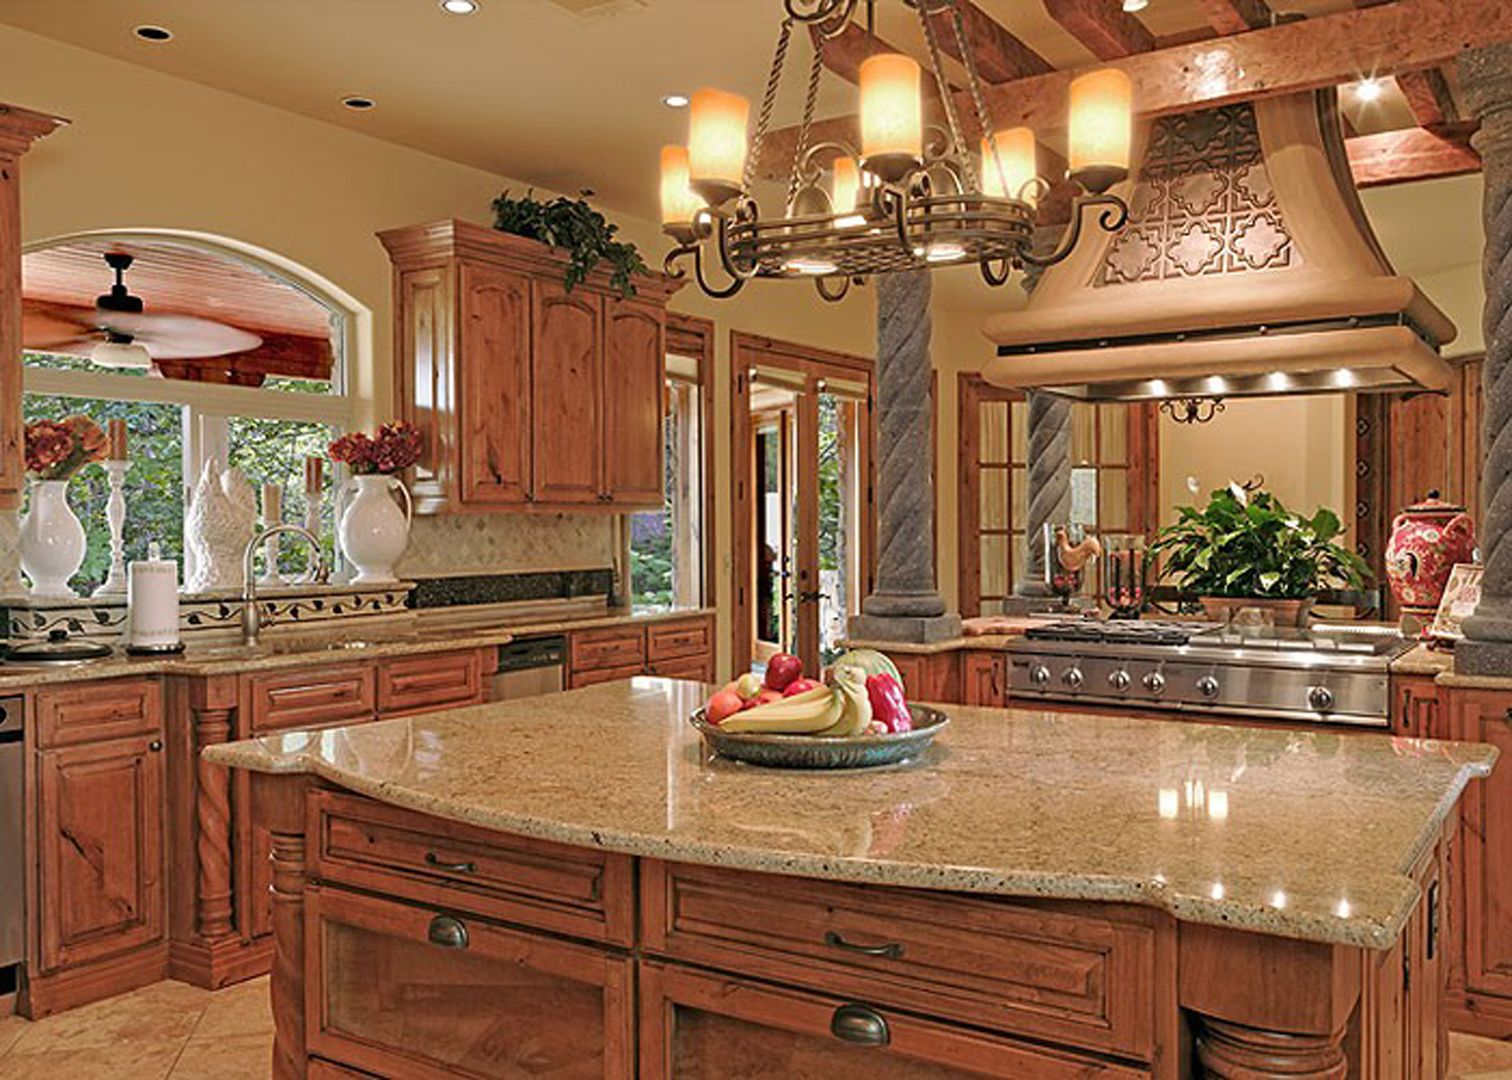 Tuscany Style Kitchen Harika Mutfaklar  Kitchens Tuscan Bathroom And Bathroom Designs